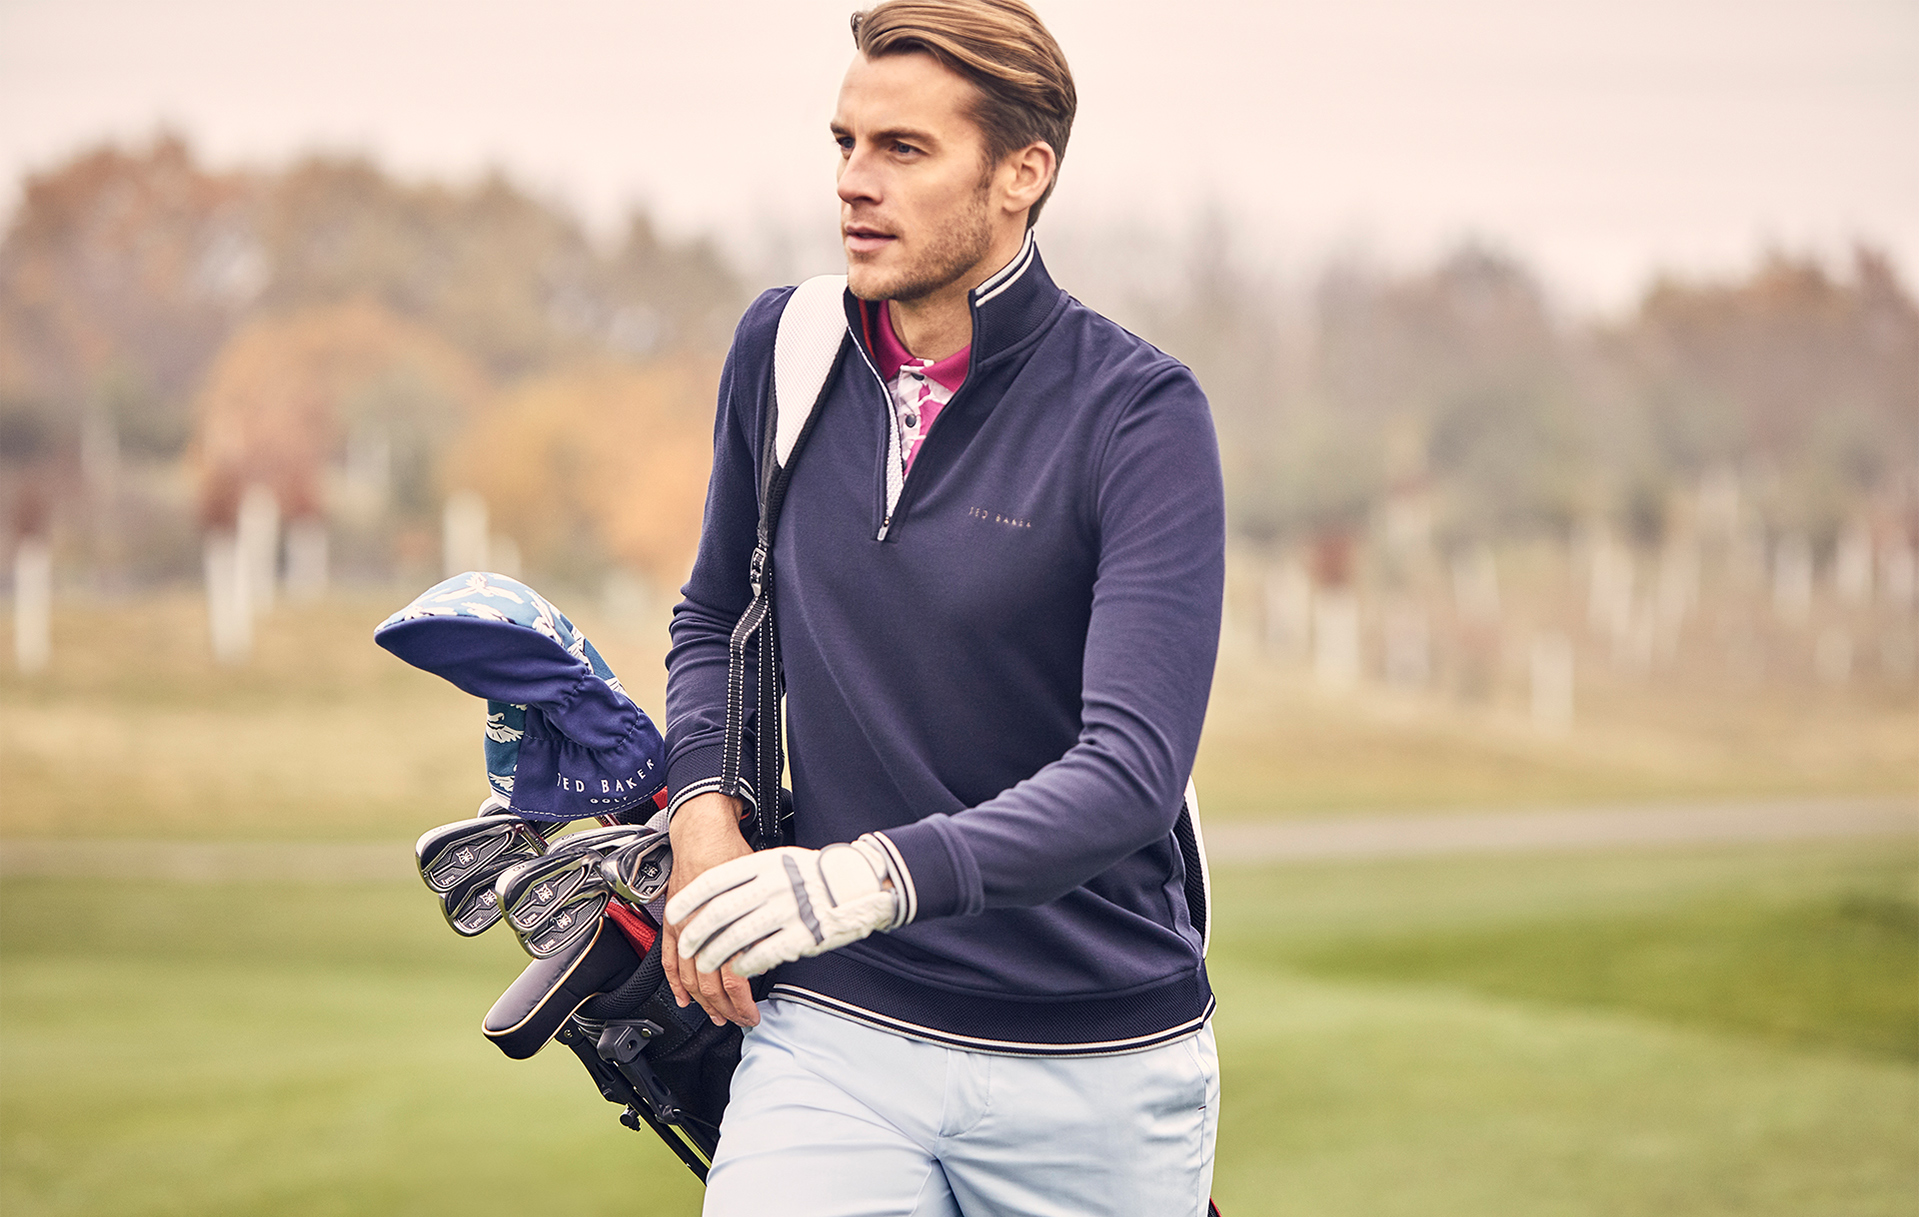 Ted_baker_golf_retouching_photography_sport_fashion